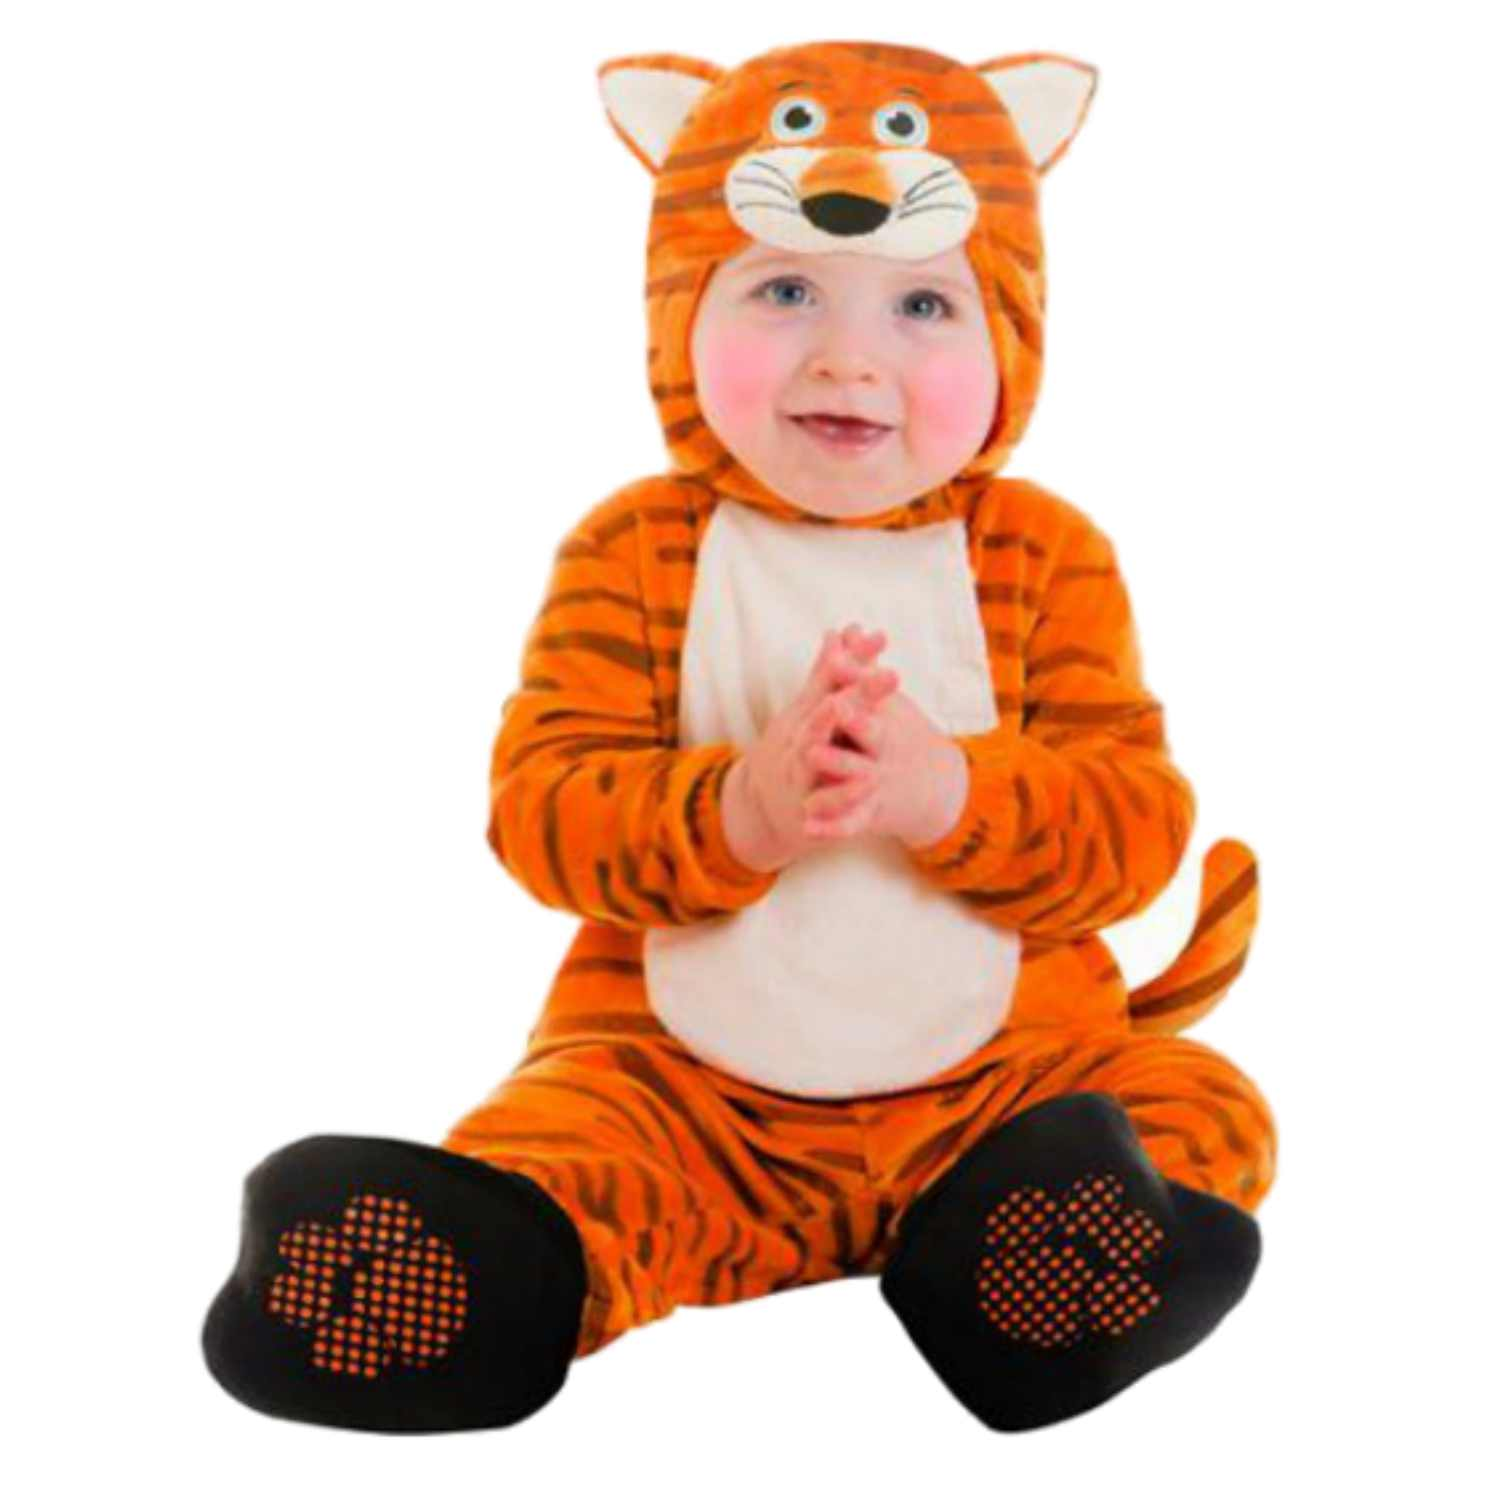 Goodmark Infant Boys u0026 Girls Tiger Costume Plush Orange Baby Cat Suit - Walmart.com  sc 1 st  Walmart & Goodmark Infant Boys u0026 Girls Tiger Costume Plush Orange Baby Cat ...